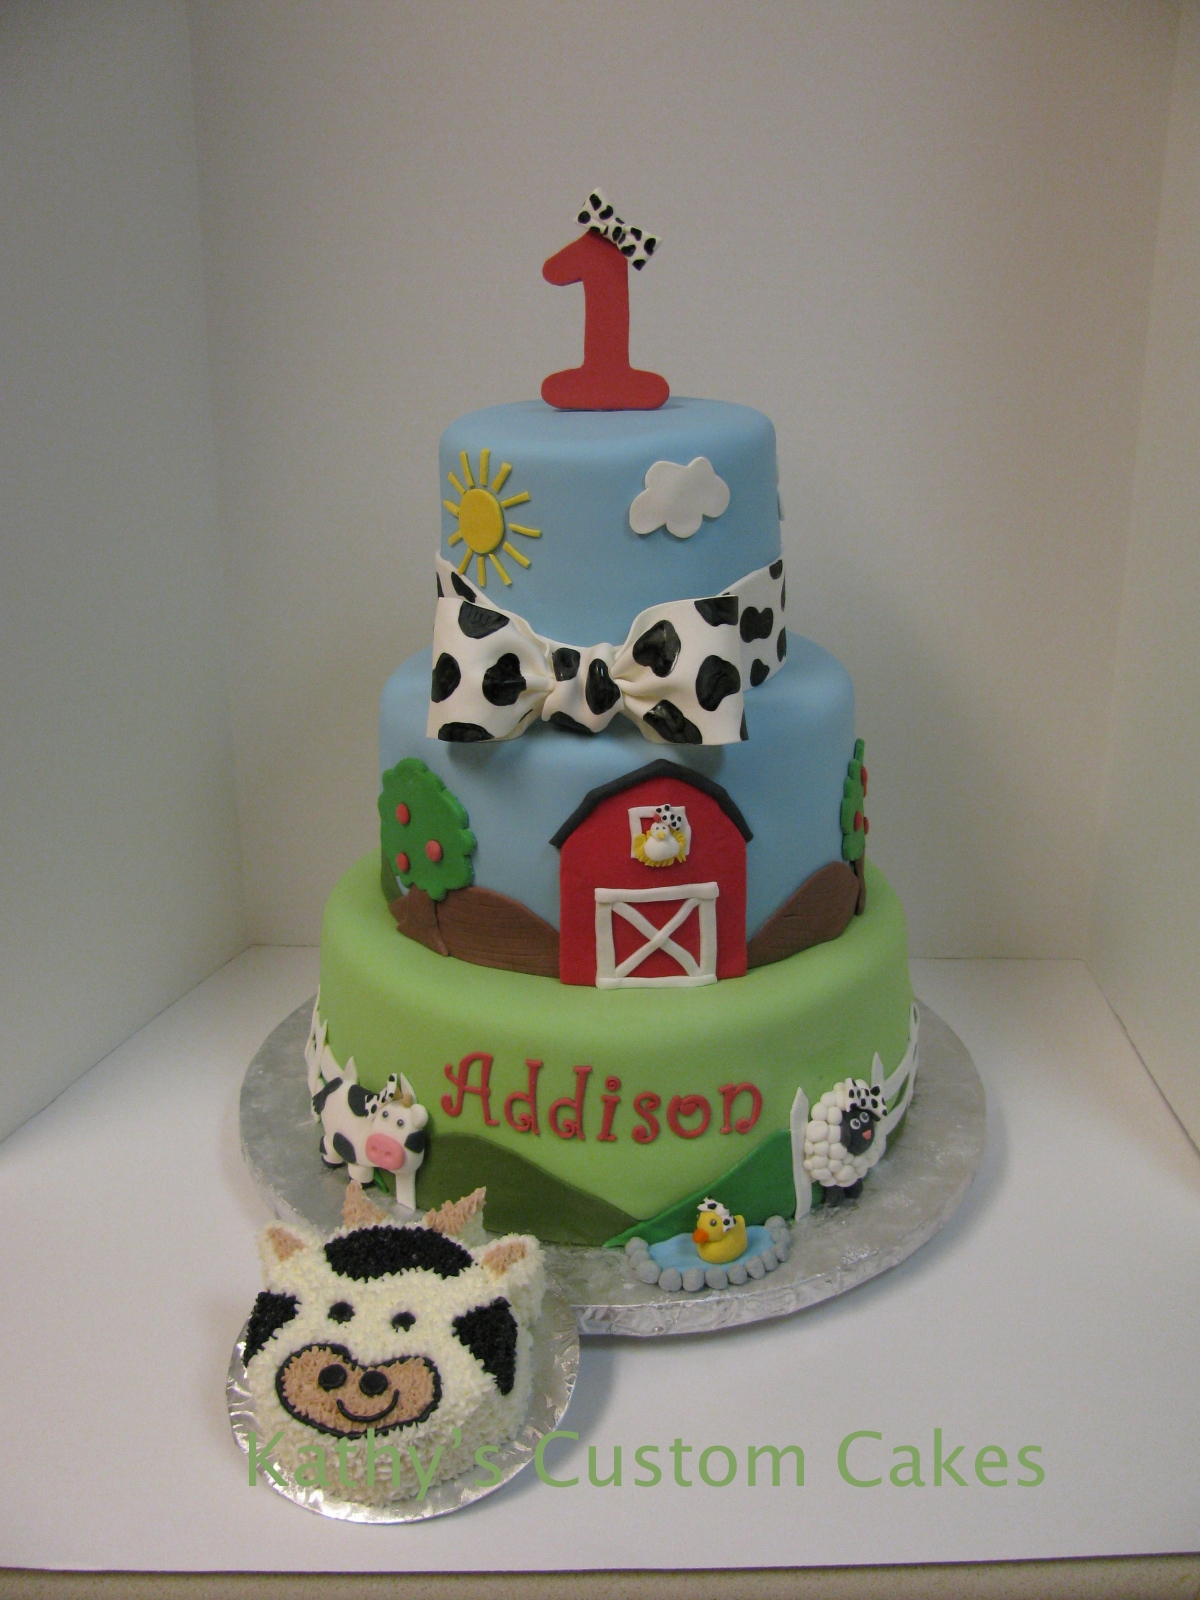 First Birthday Cake All The Little Animals Are Wearing Cow Print Bows Just Like Girl So Cute Last Detail Photo Shows